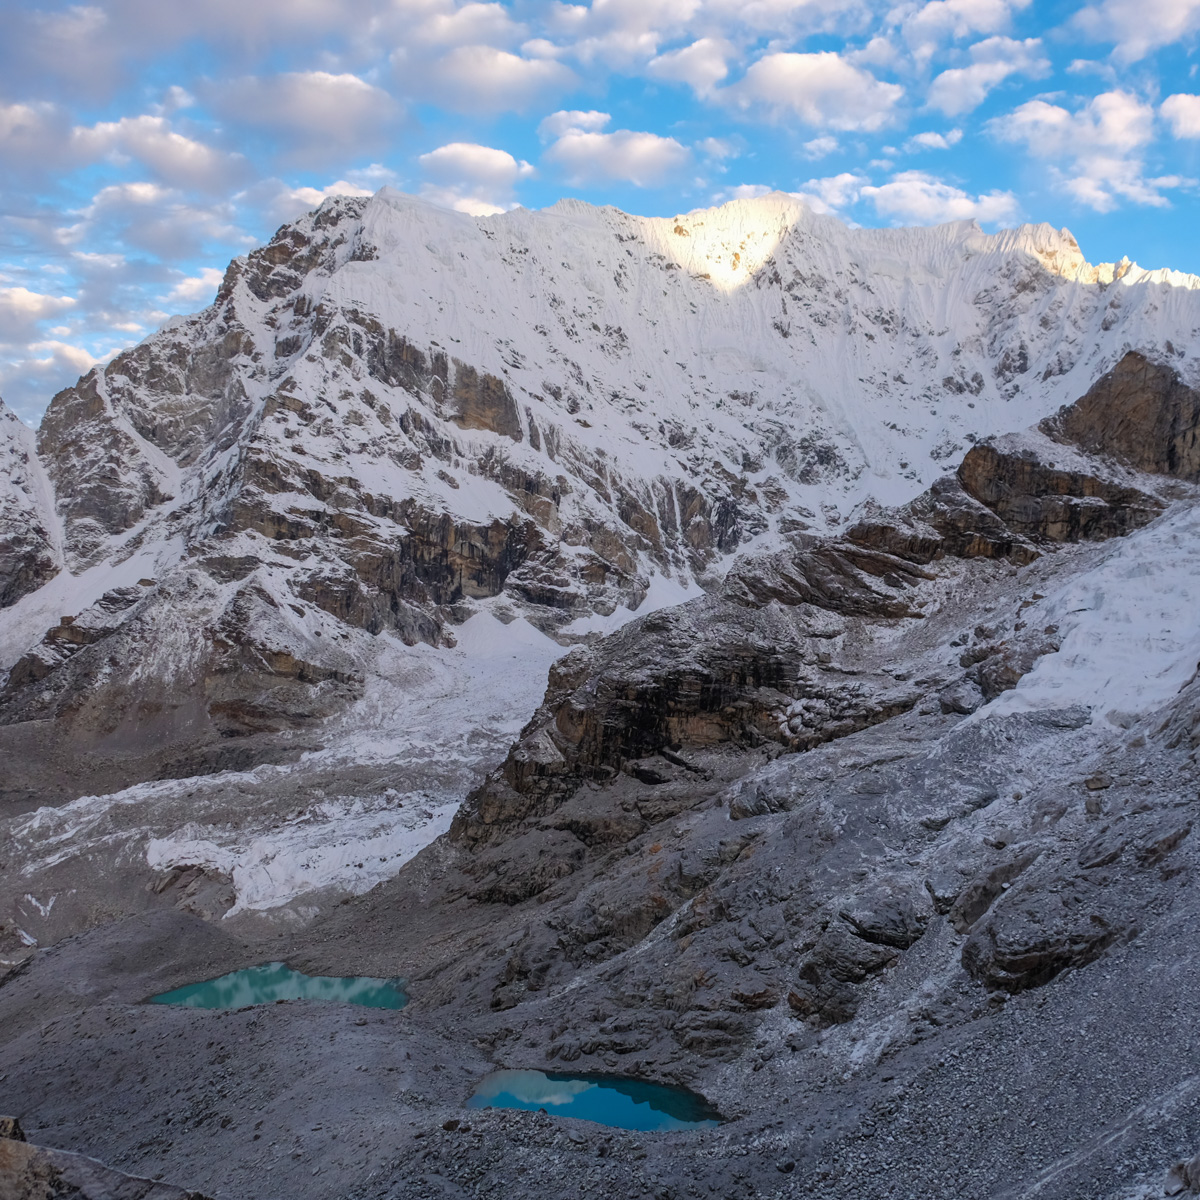 Kala Patthar & Gokyo, Everest 3 pass #3 7